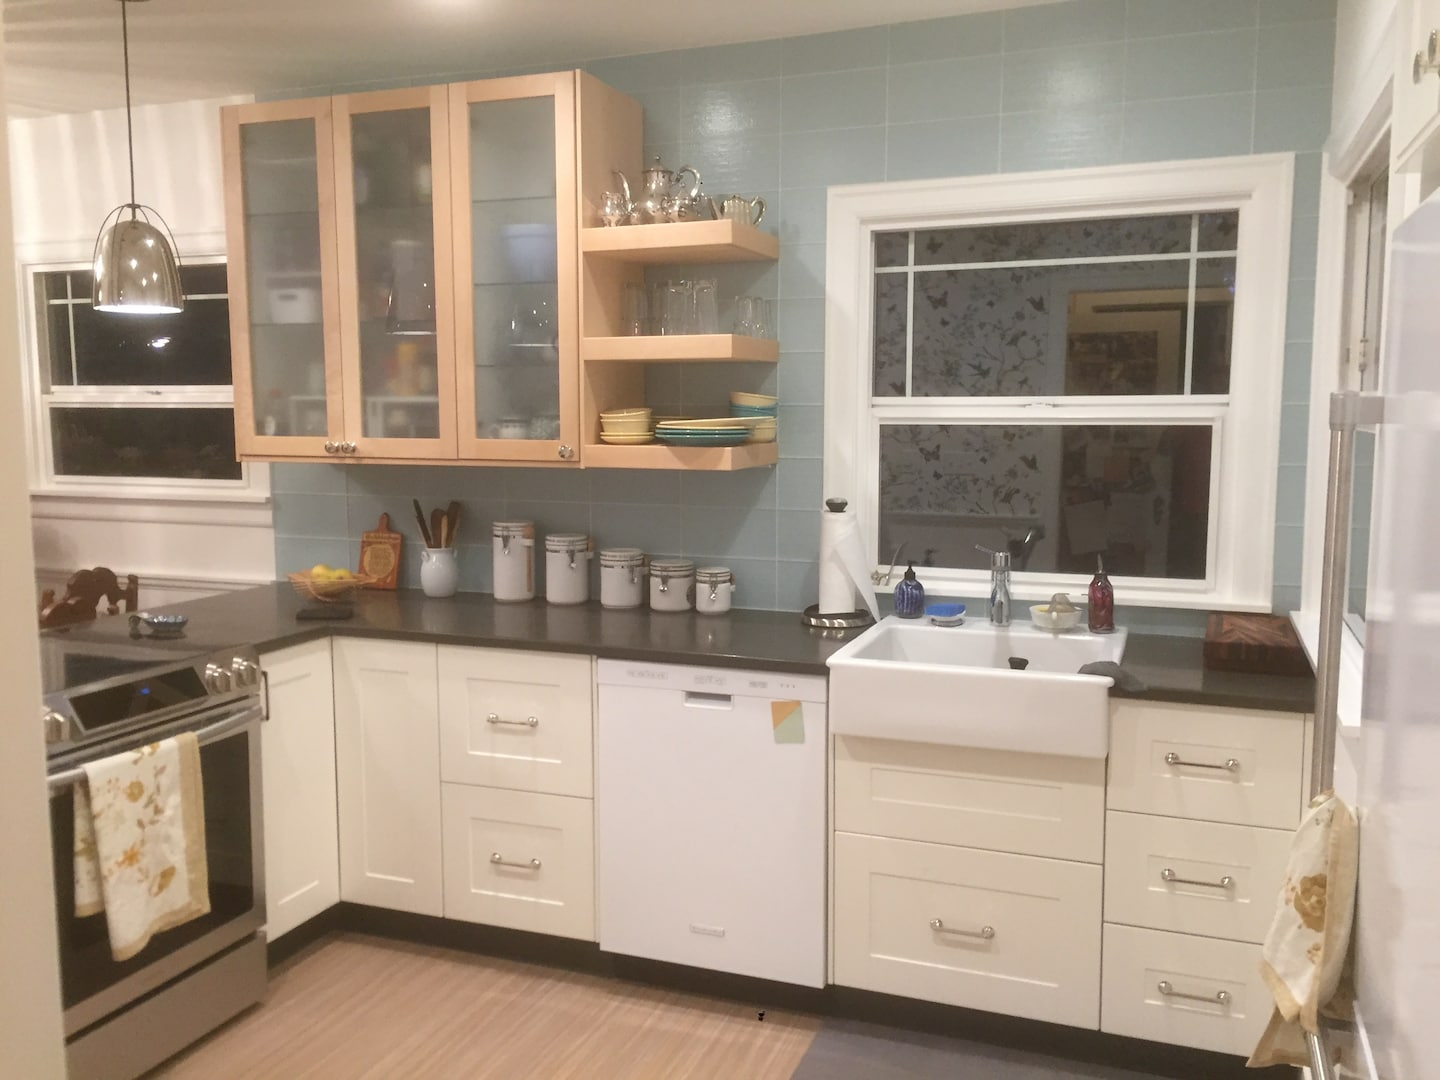 Mr Tapia Maintenance Amp Remodeling Llc Reviews Vancouver Wa Angie S List